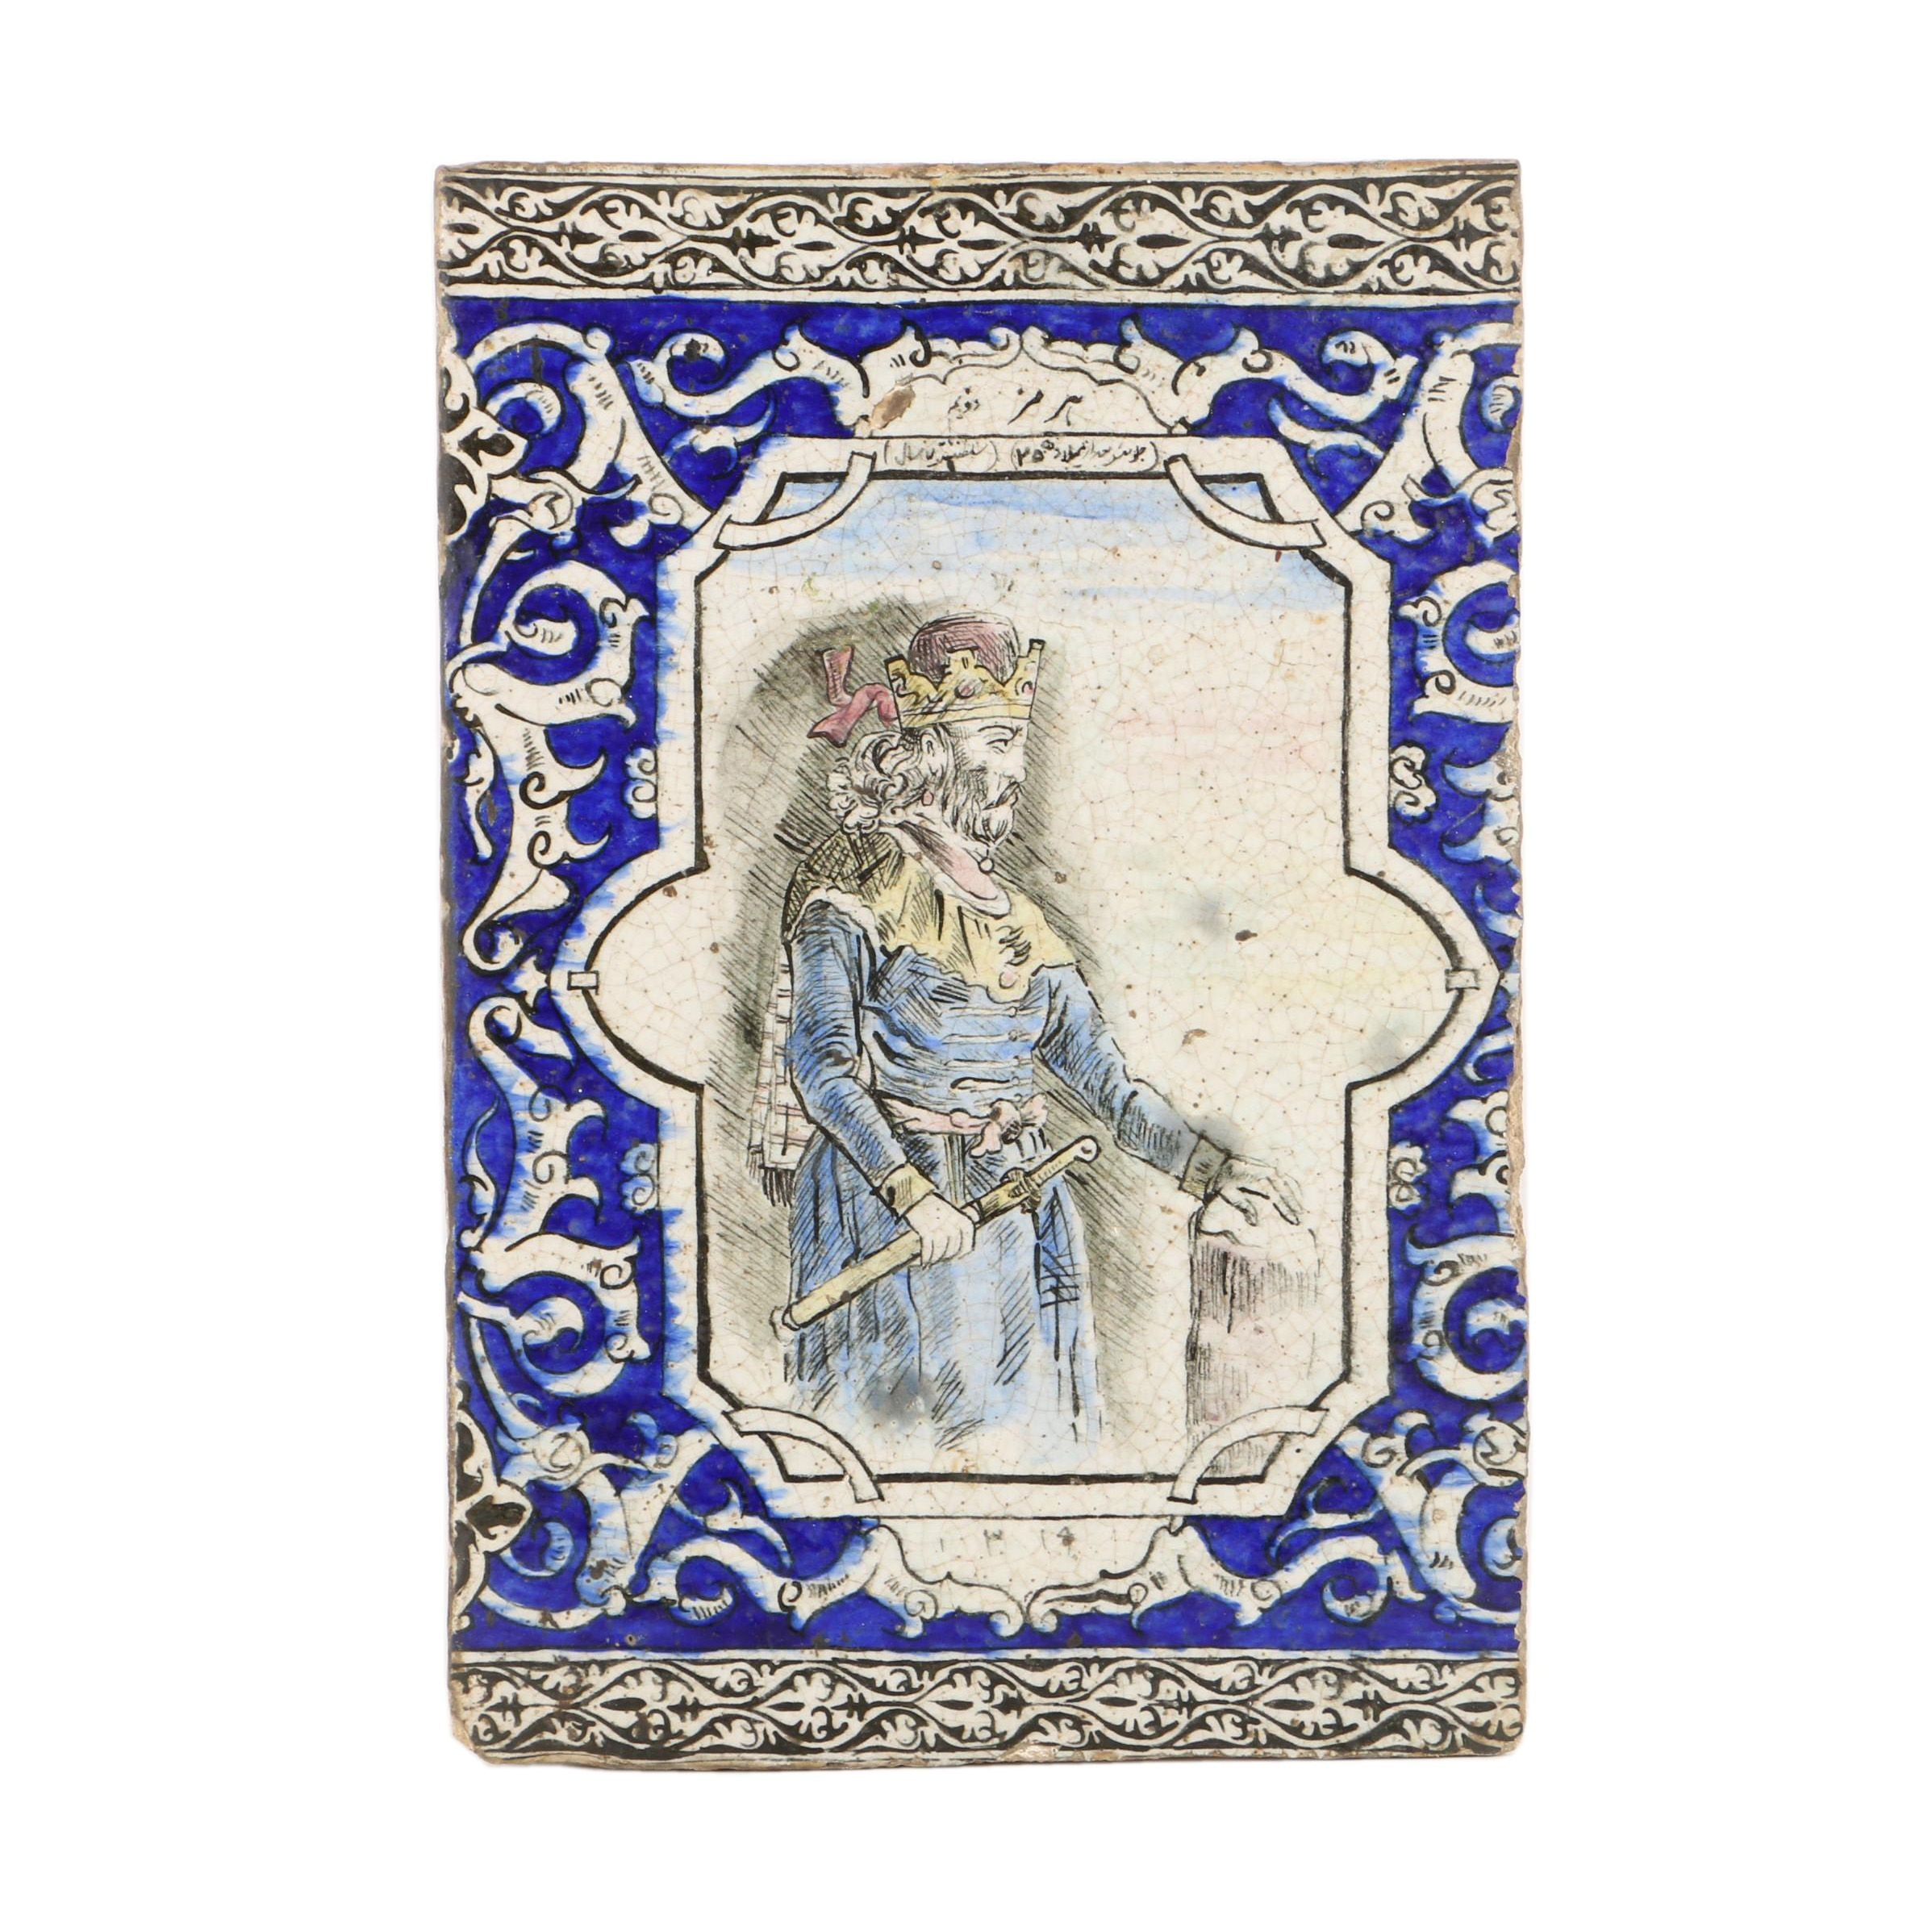 Antique Persian Hand-Painted Ceramic Tile of a King